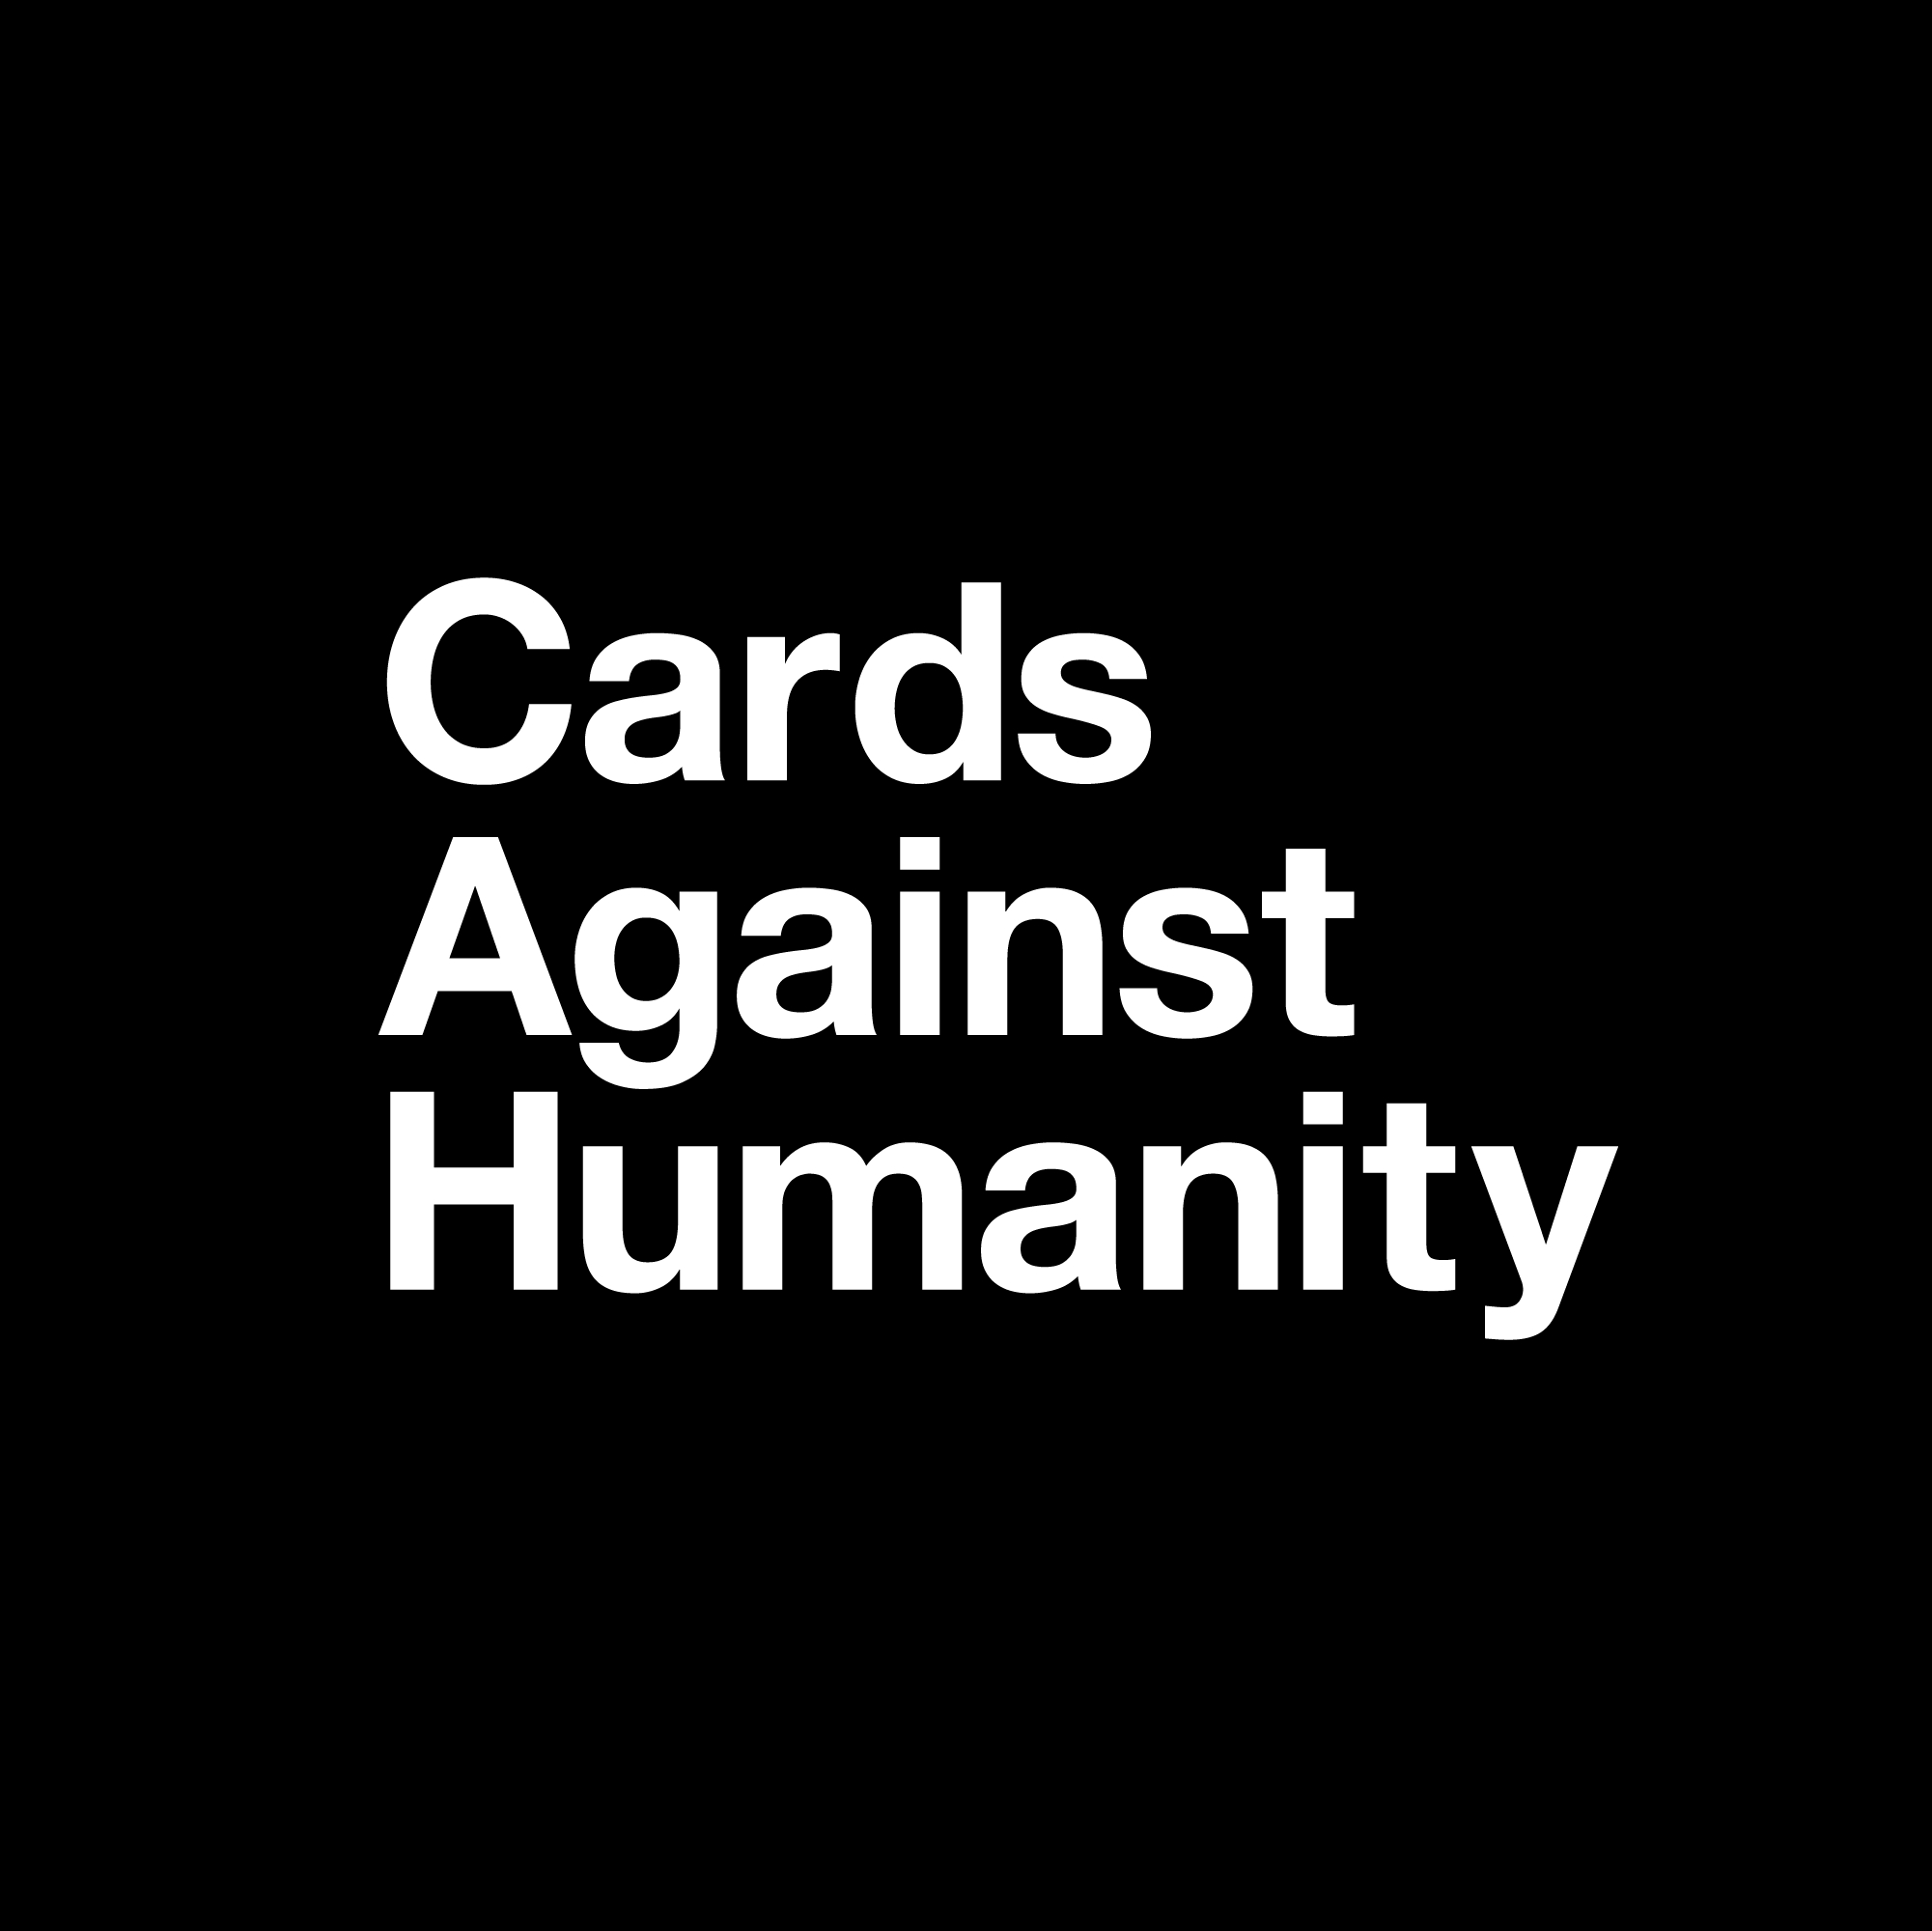 Cards Against Humanity - Wikipedia Intended For Cards Against Humanity Template